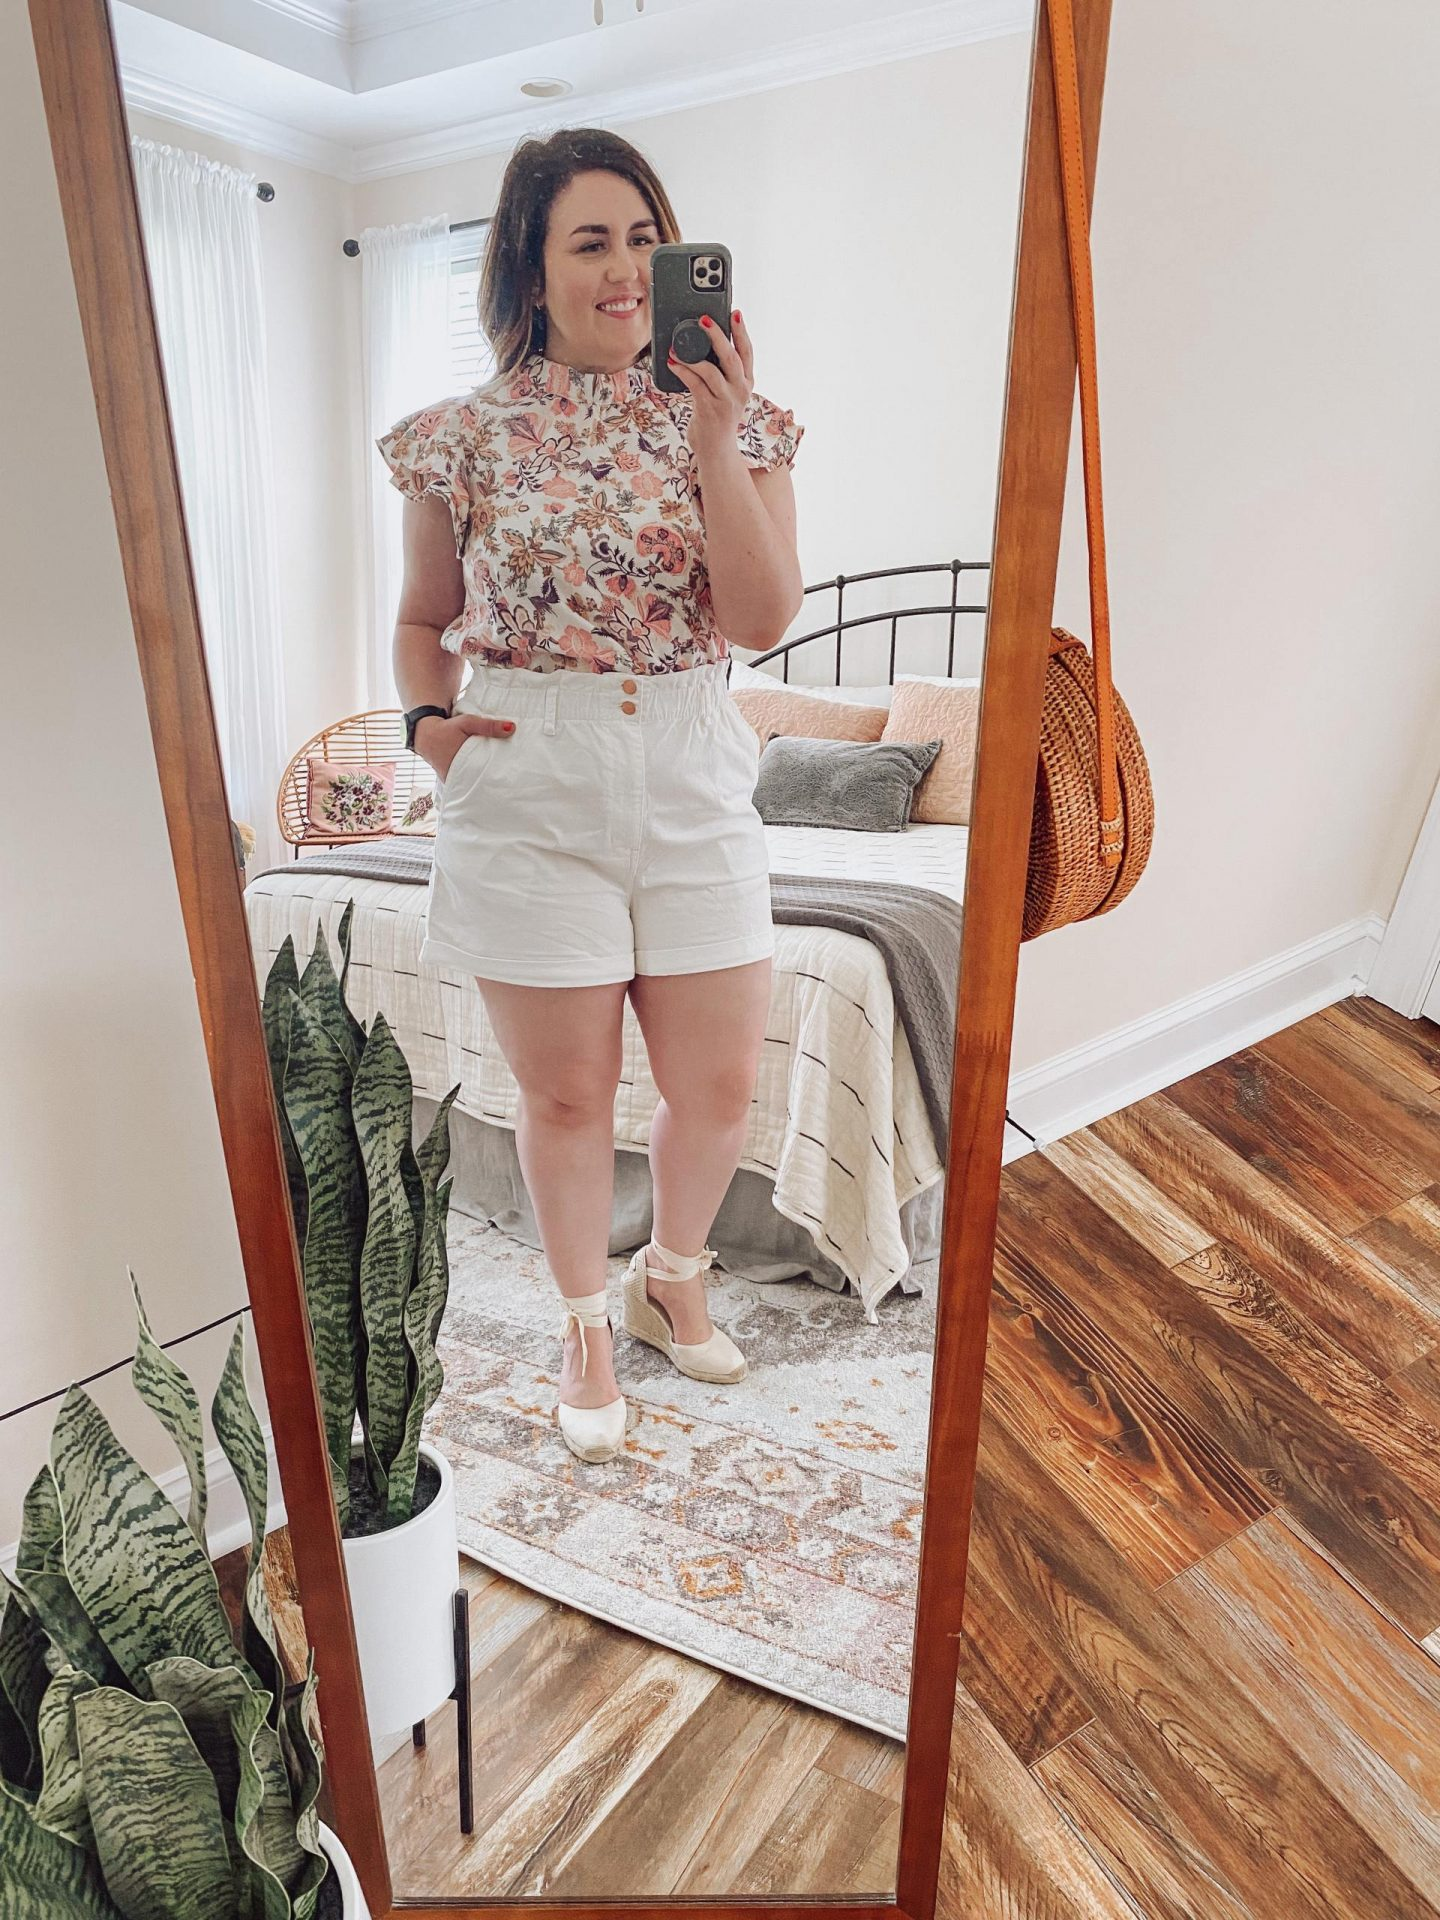 NC blogger Rebecca Lately is sharing how she's been styling white shorts for summer. If you need some summer inspiration, check this out!